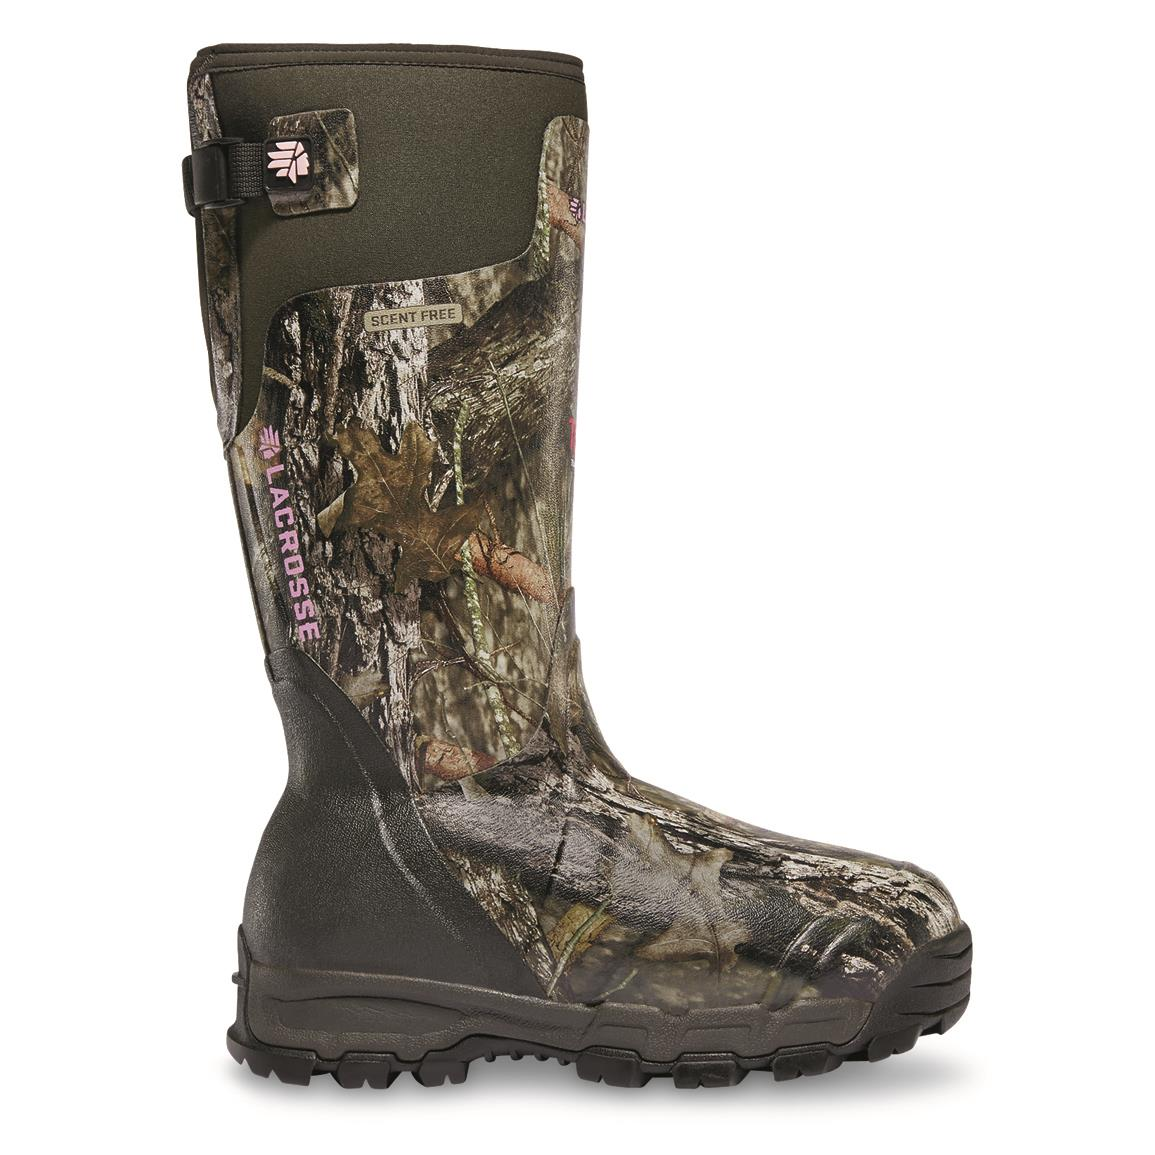 "LaCrosse 15"" Alphaburly Pro Women's Insulated Camo Hunting Boots, 1,600 Gram, Mossy Oak Break-Up Country"